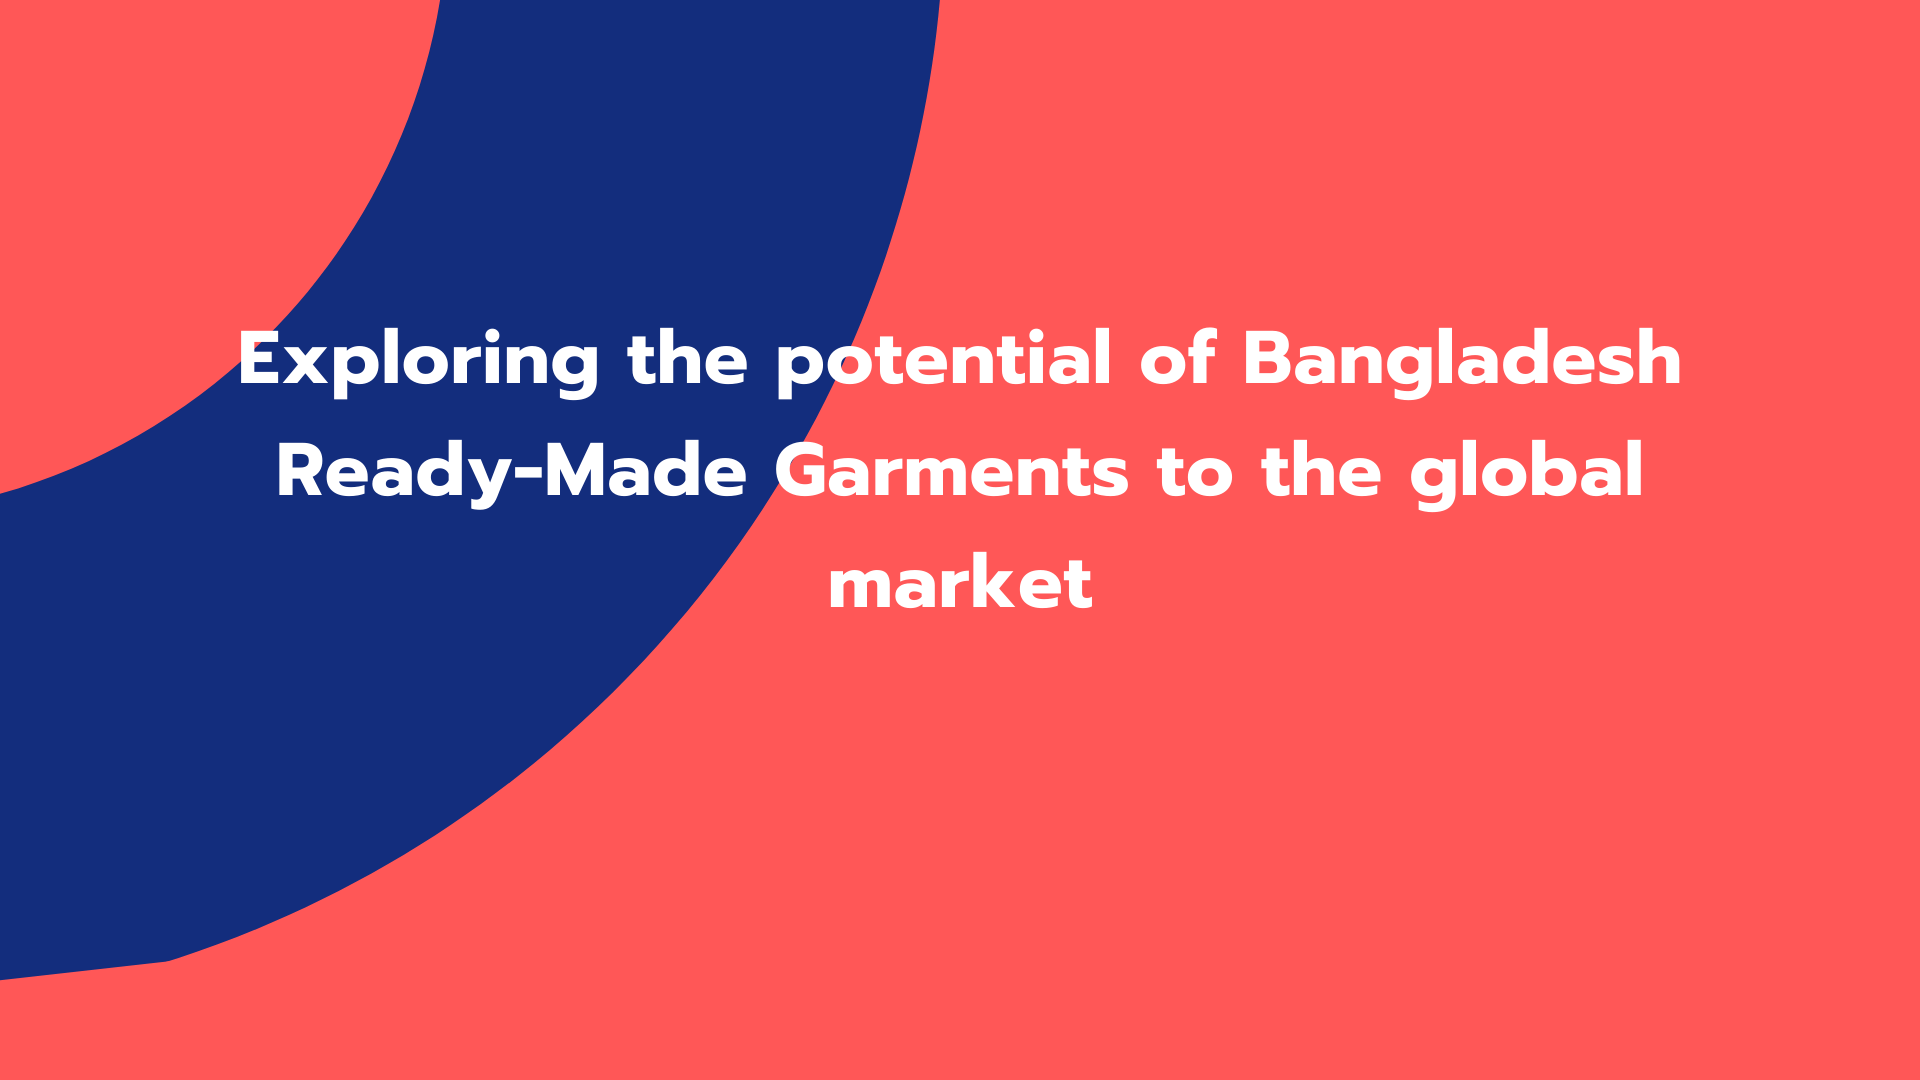 Exploring the potential of Bangladesh Ready-Made Garments to the global market